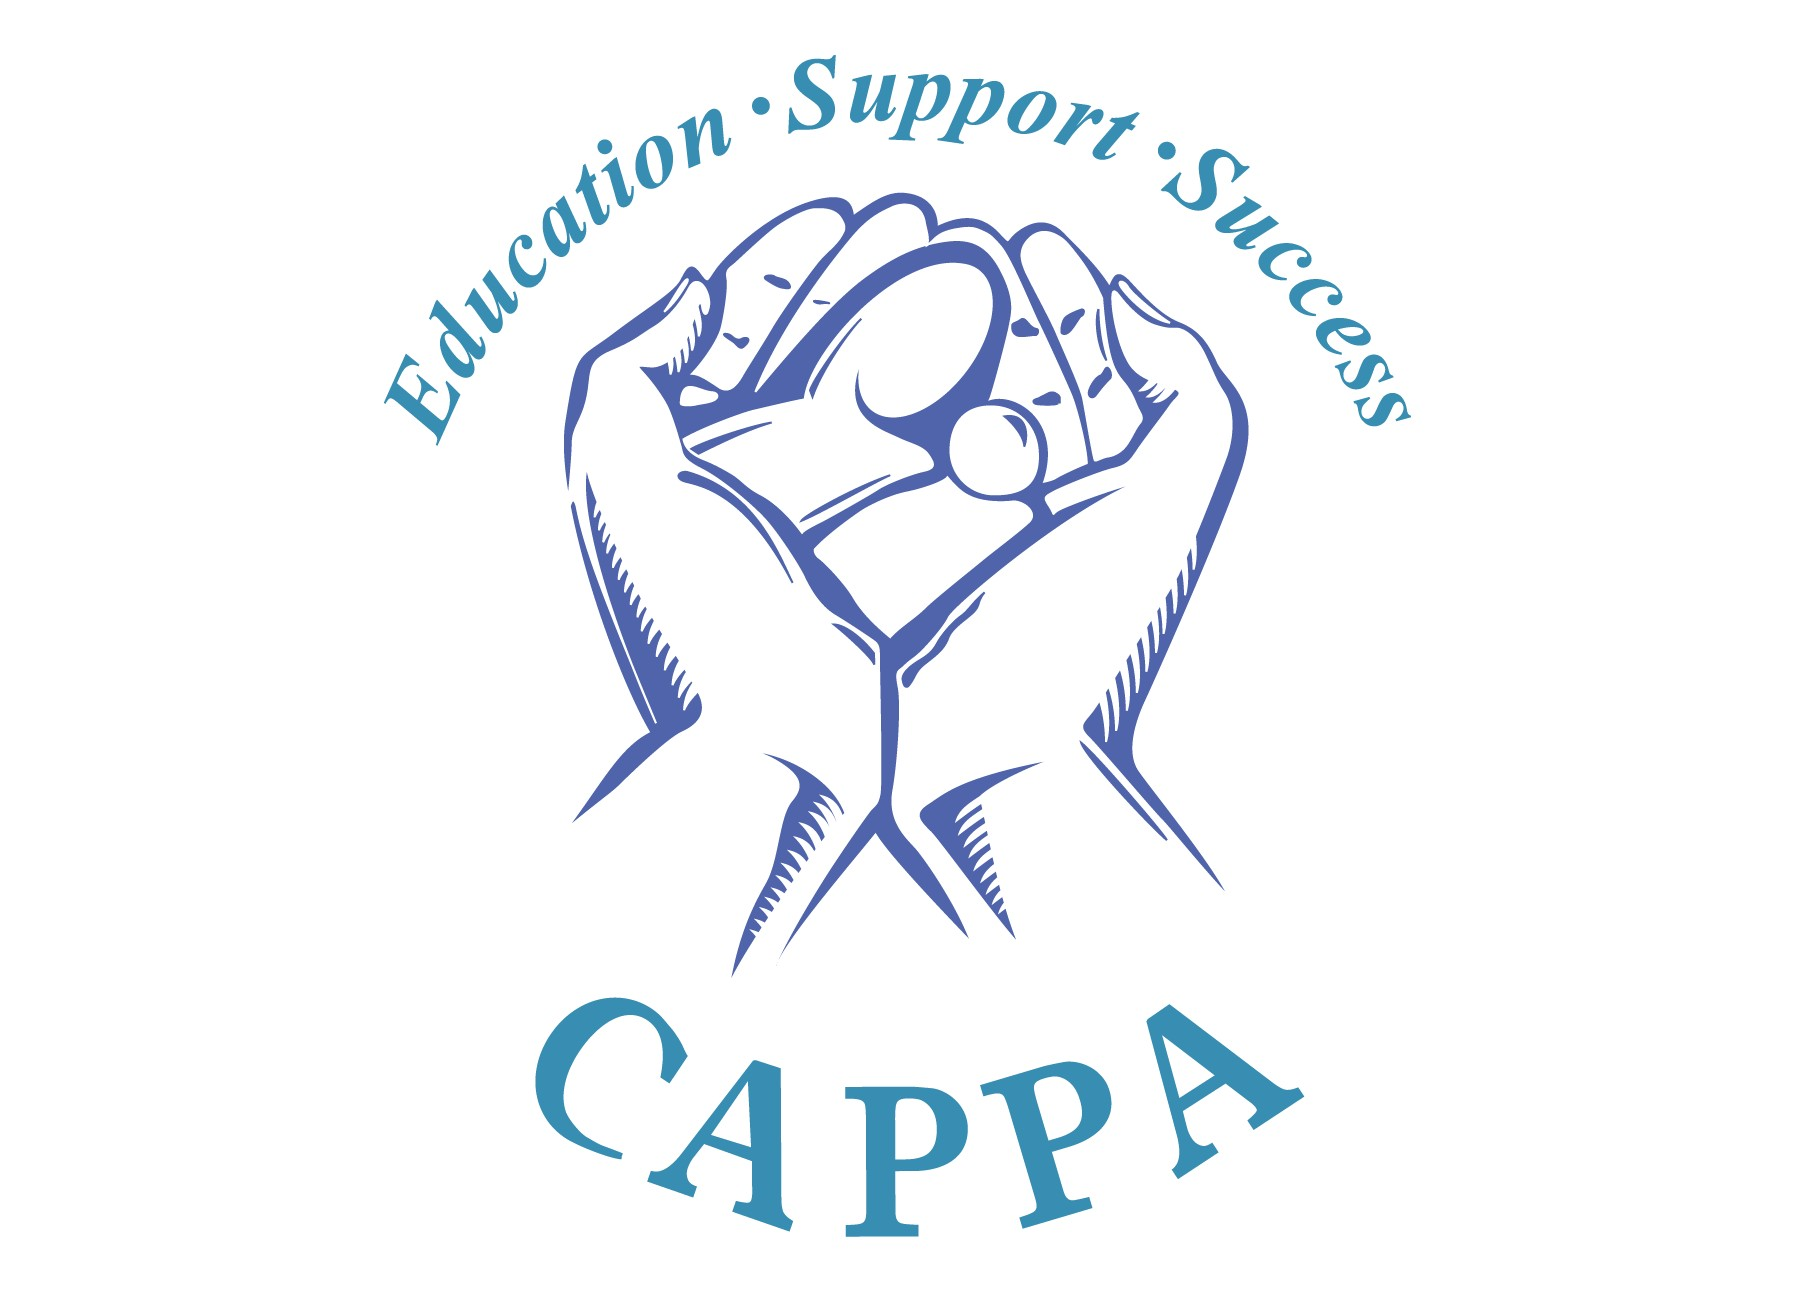 CAPPA (Childbirth and Postpartum Professional Association)